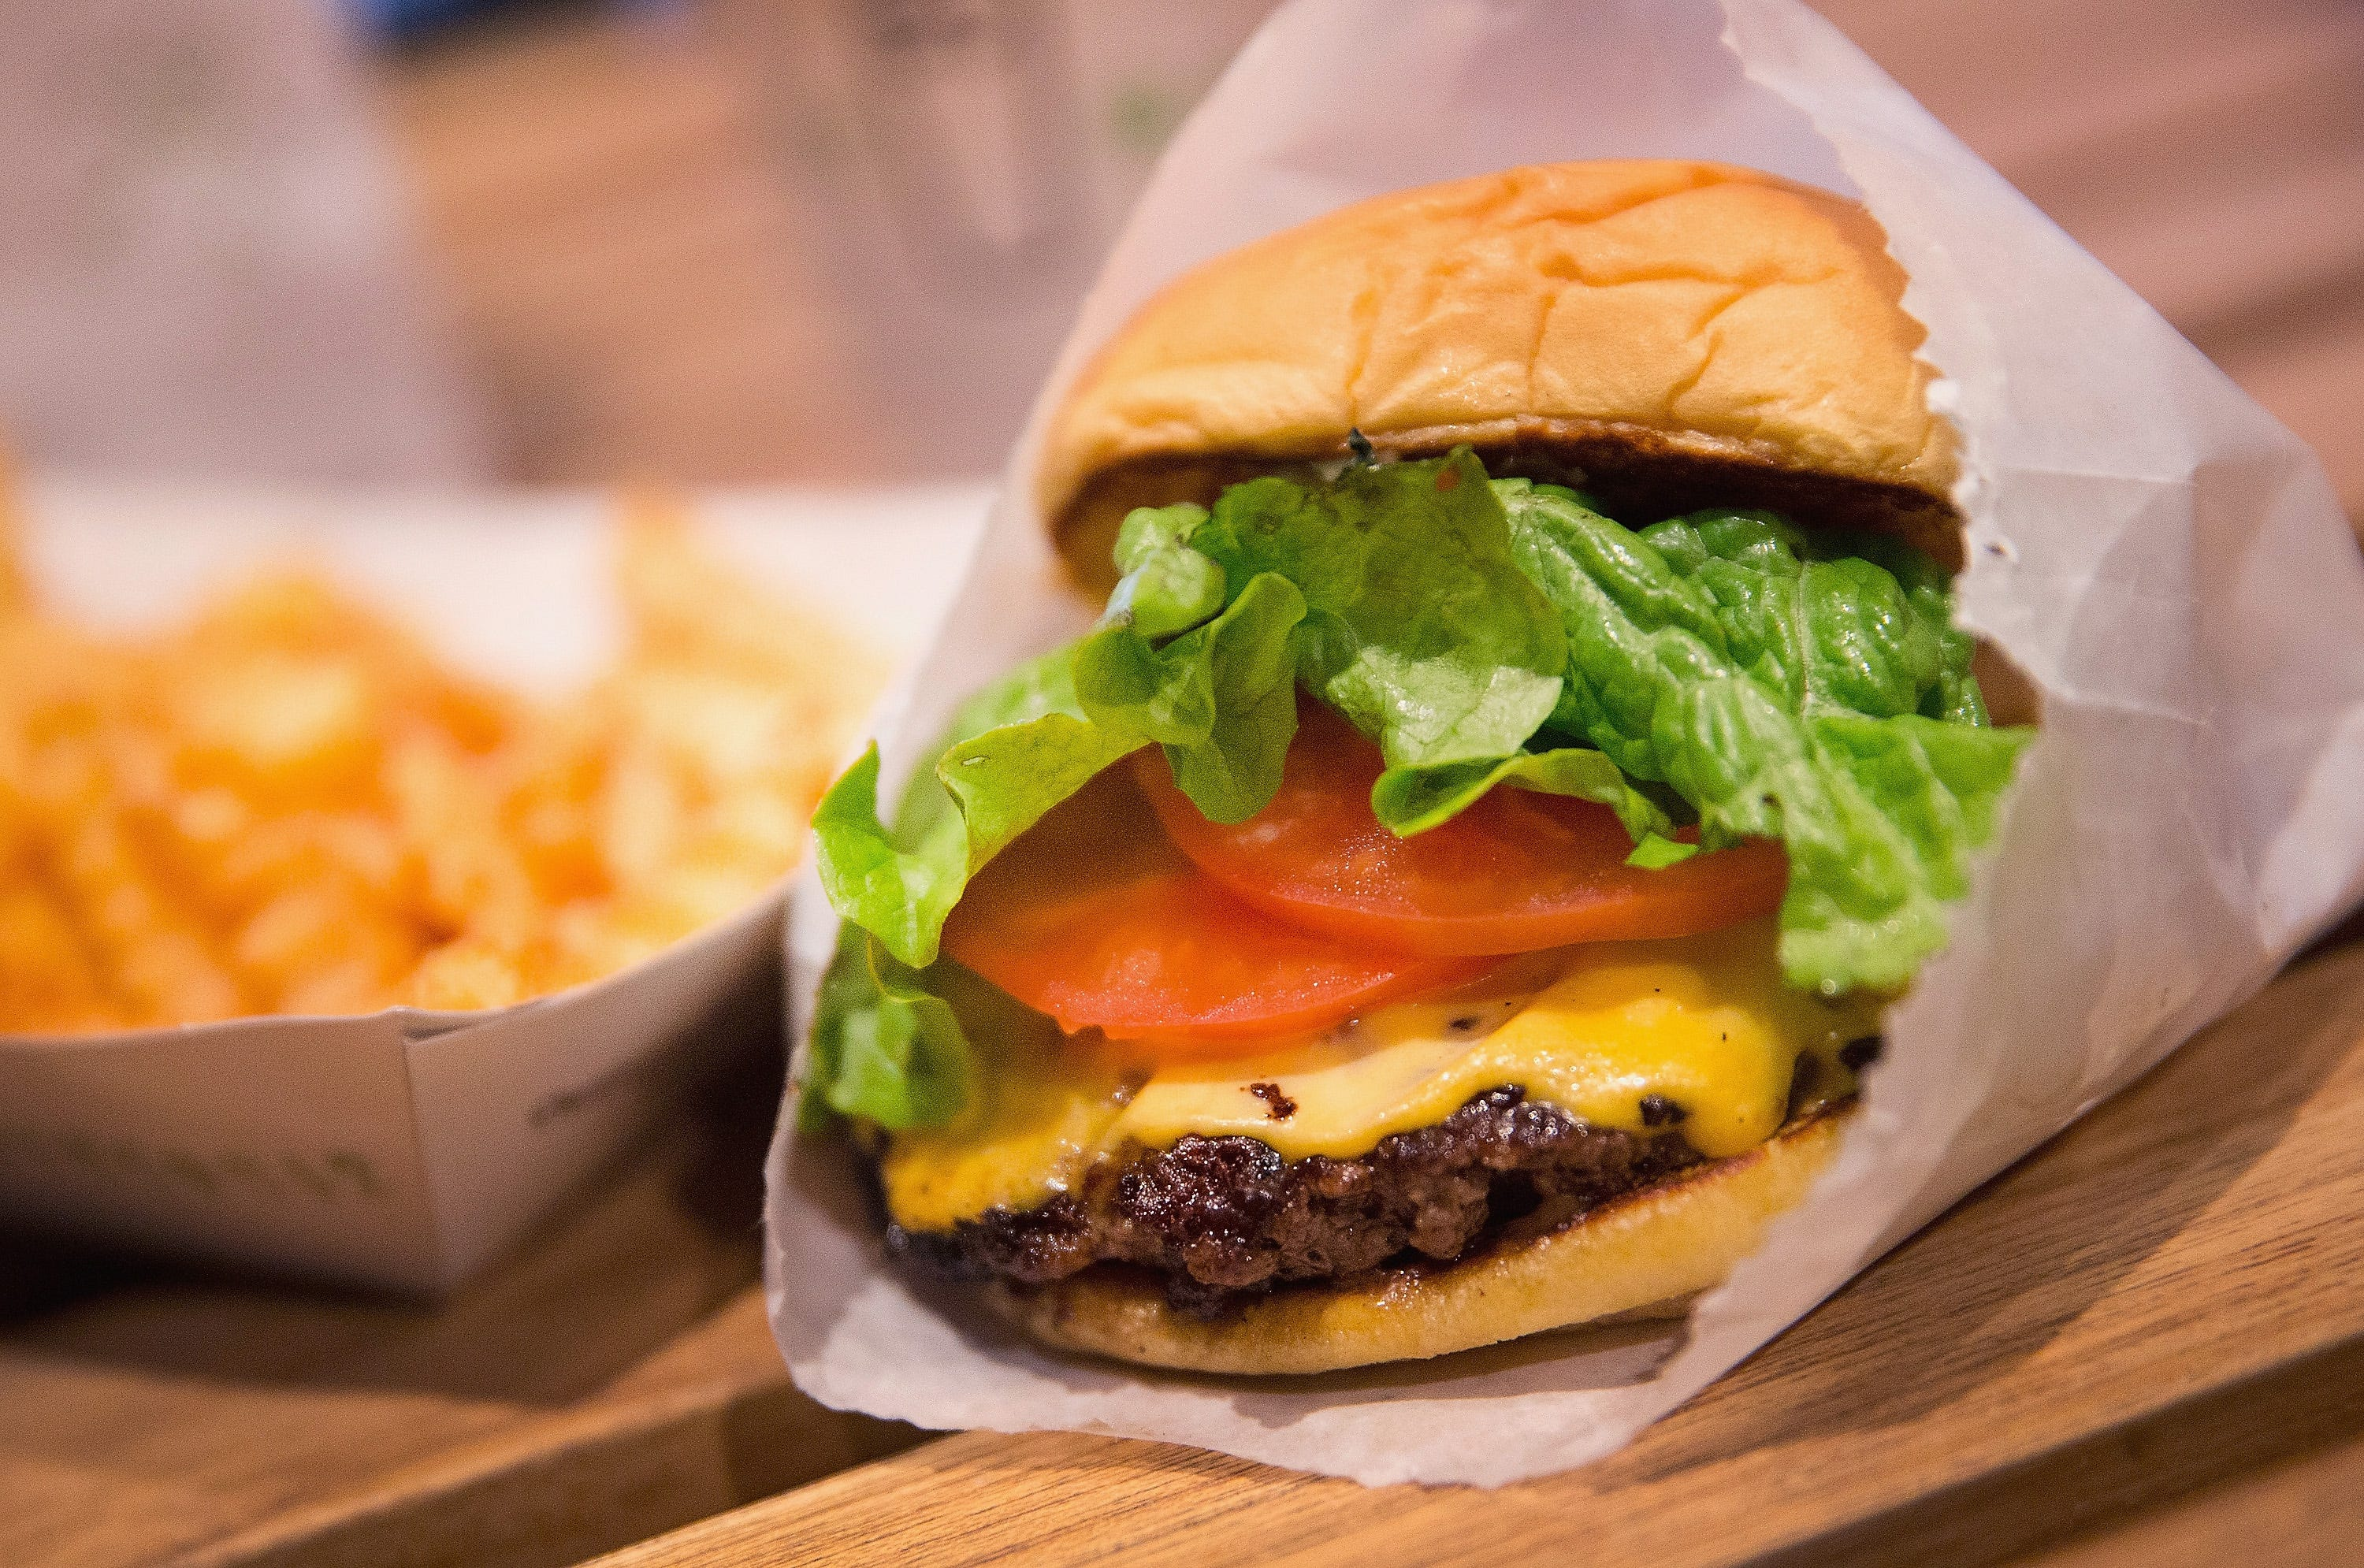 Chili's New Burger Packs A Day's Worth of Calories Chili's New Burger Packs A Day's Worth of Calories new pictures